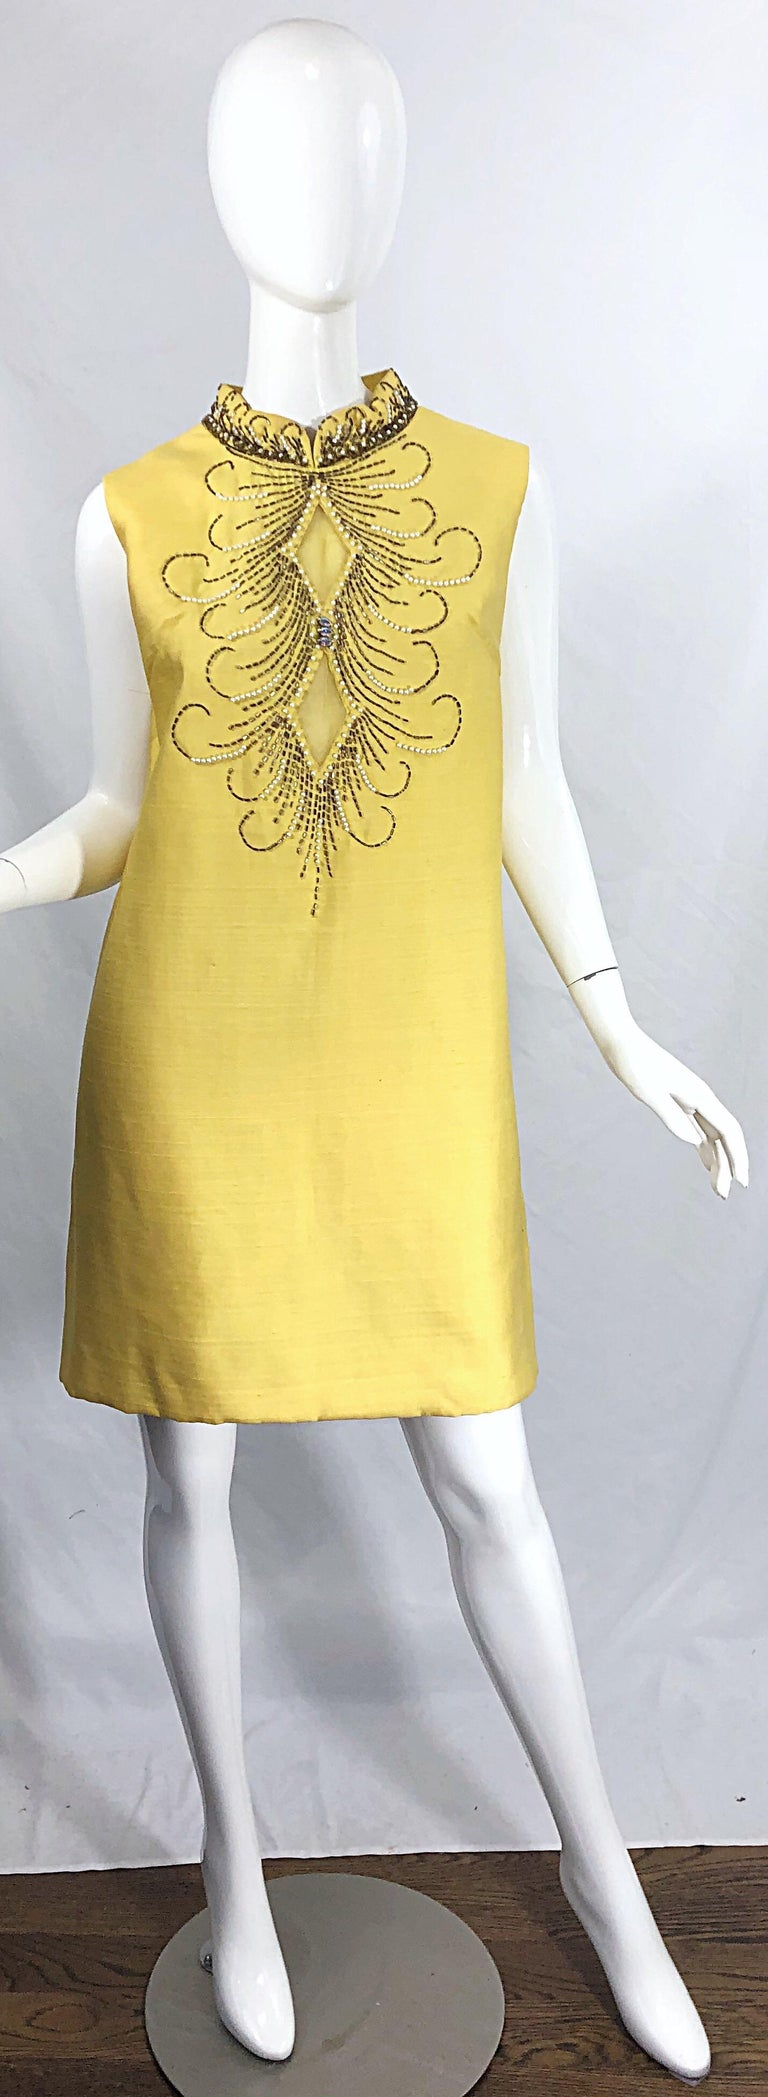 Chic early 60s larger sized yellow beaded, rhinestone and sequin silk shantung shift dress ! Features hundreds of hand sewn beads throughout. Semi sheer diamond shaped mesh cut-outs at the bust. Hidden metal zipper up the back with hook-and-eye